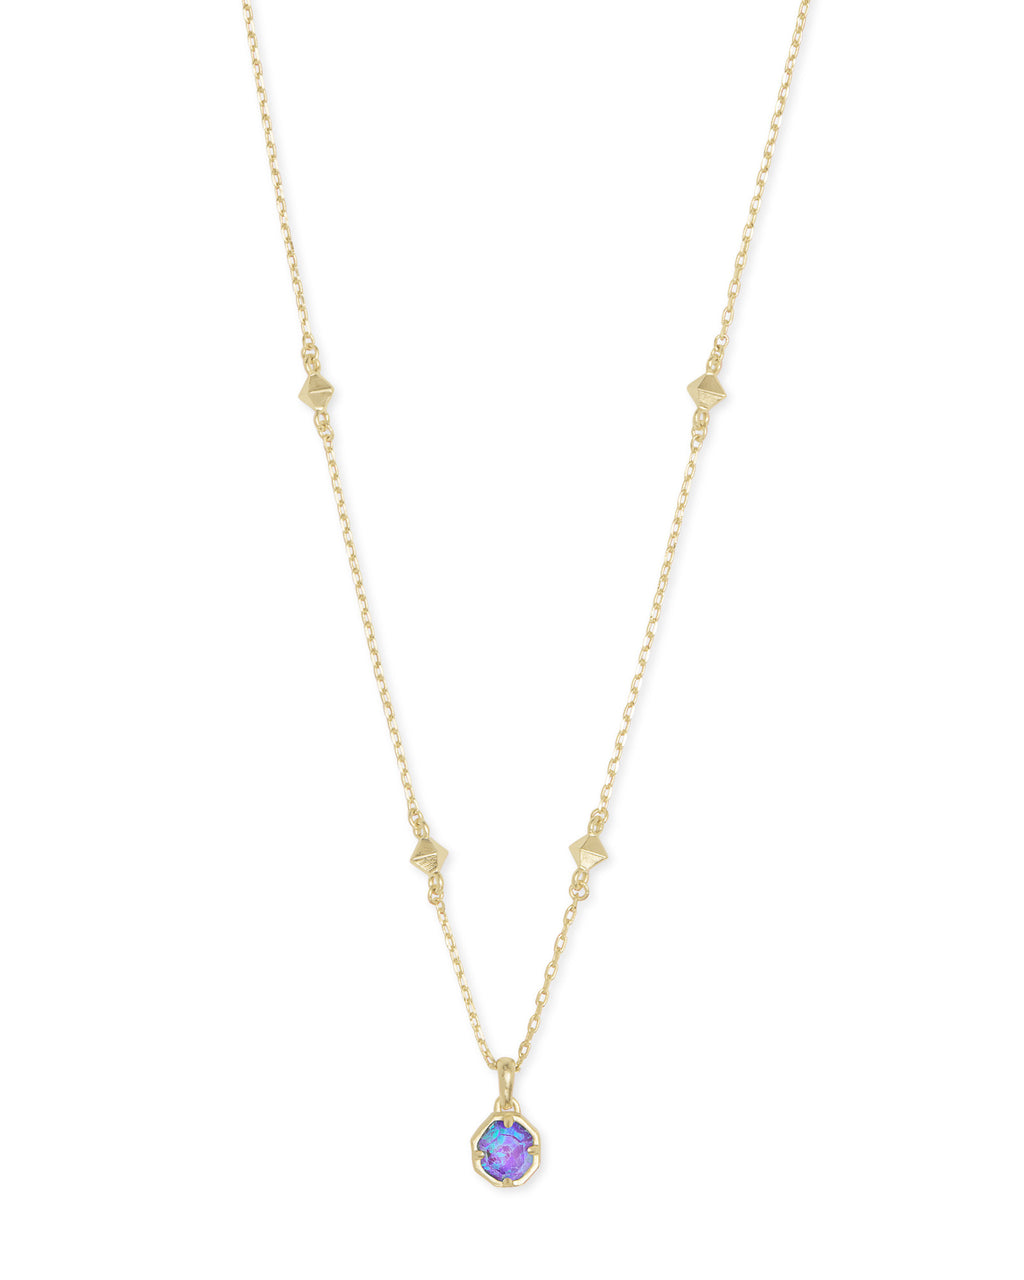 Nola Short Pendant in Gold Violet Opal Illusion